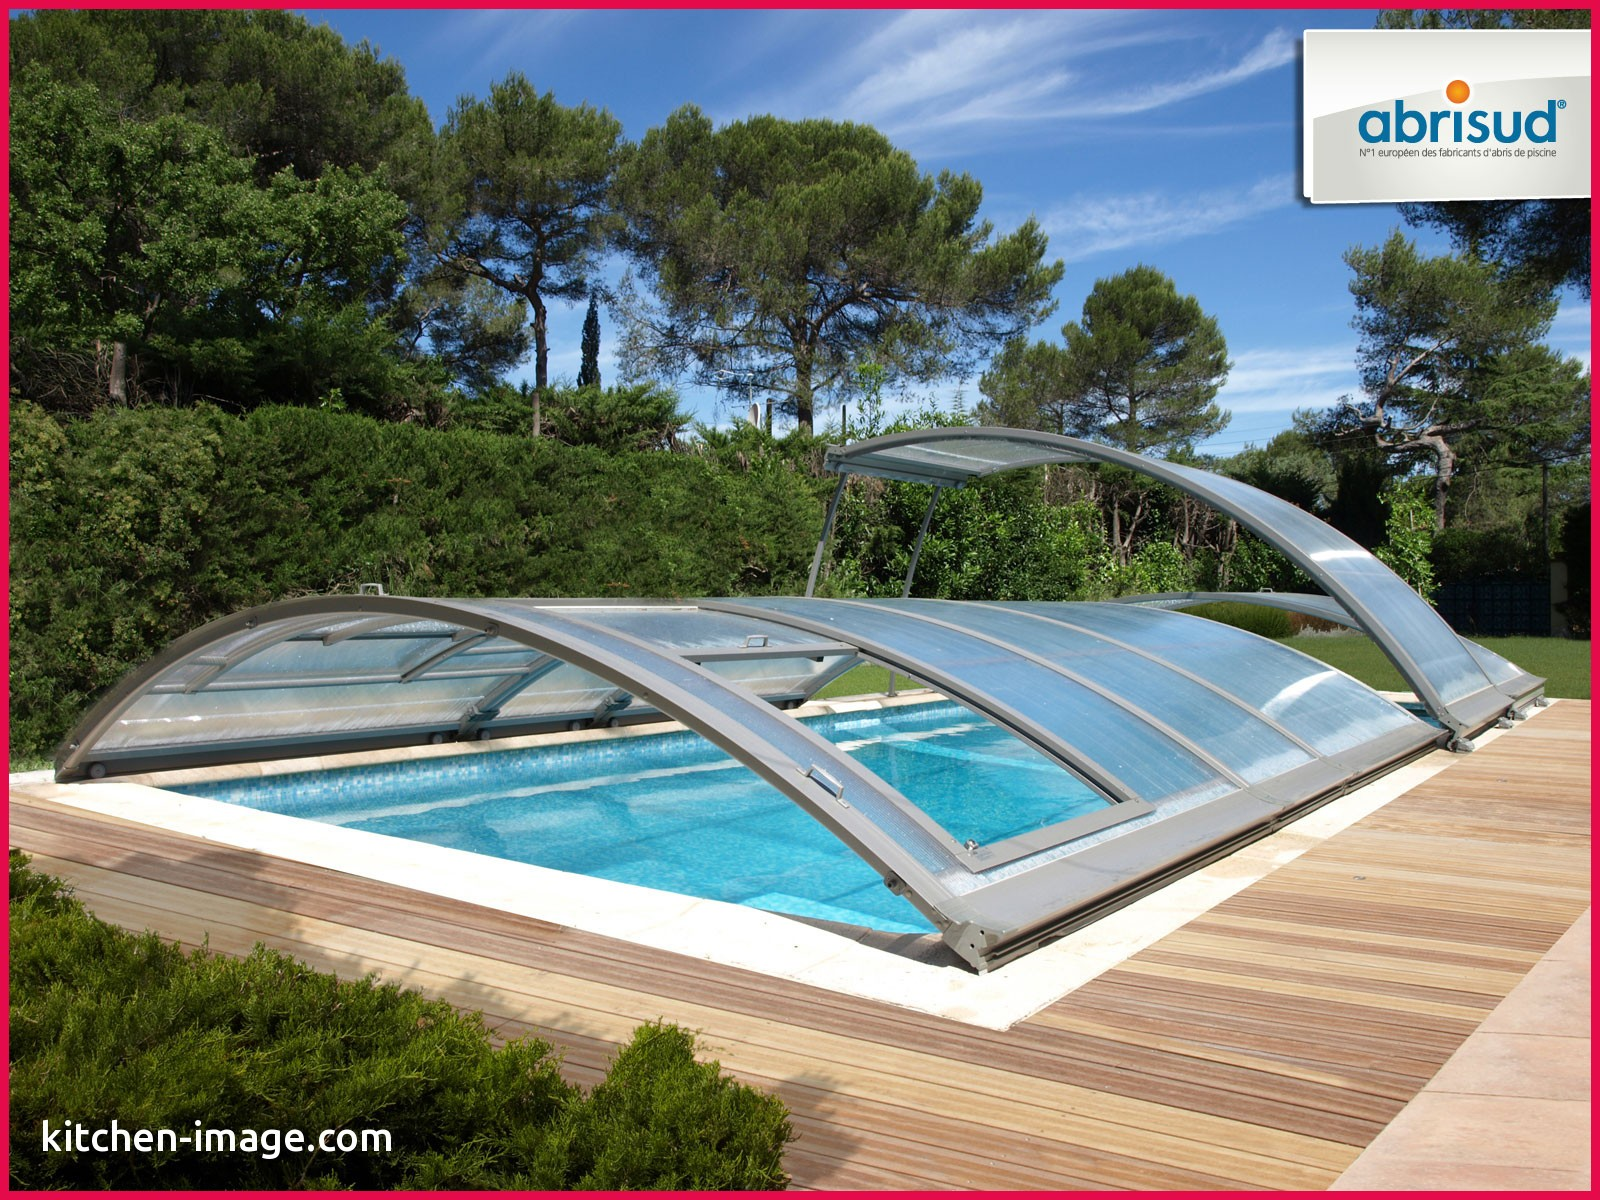 Couverture Piscine Rigide Volet Piscine Rigide